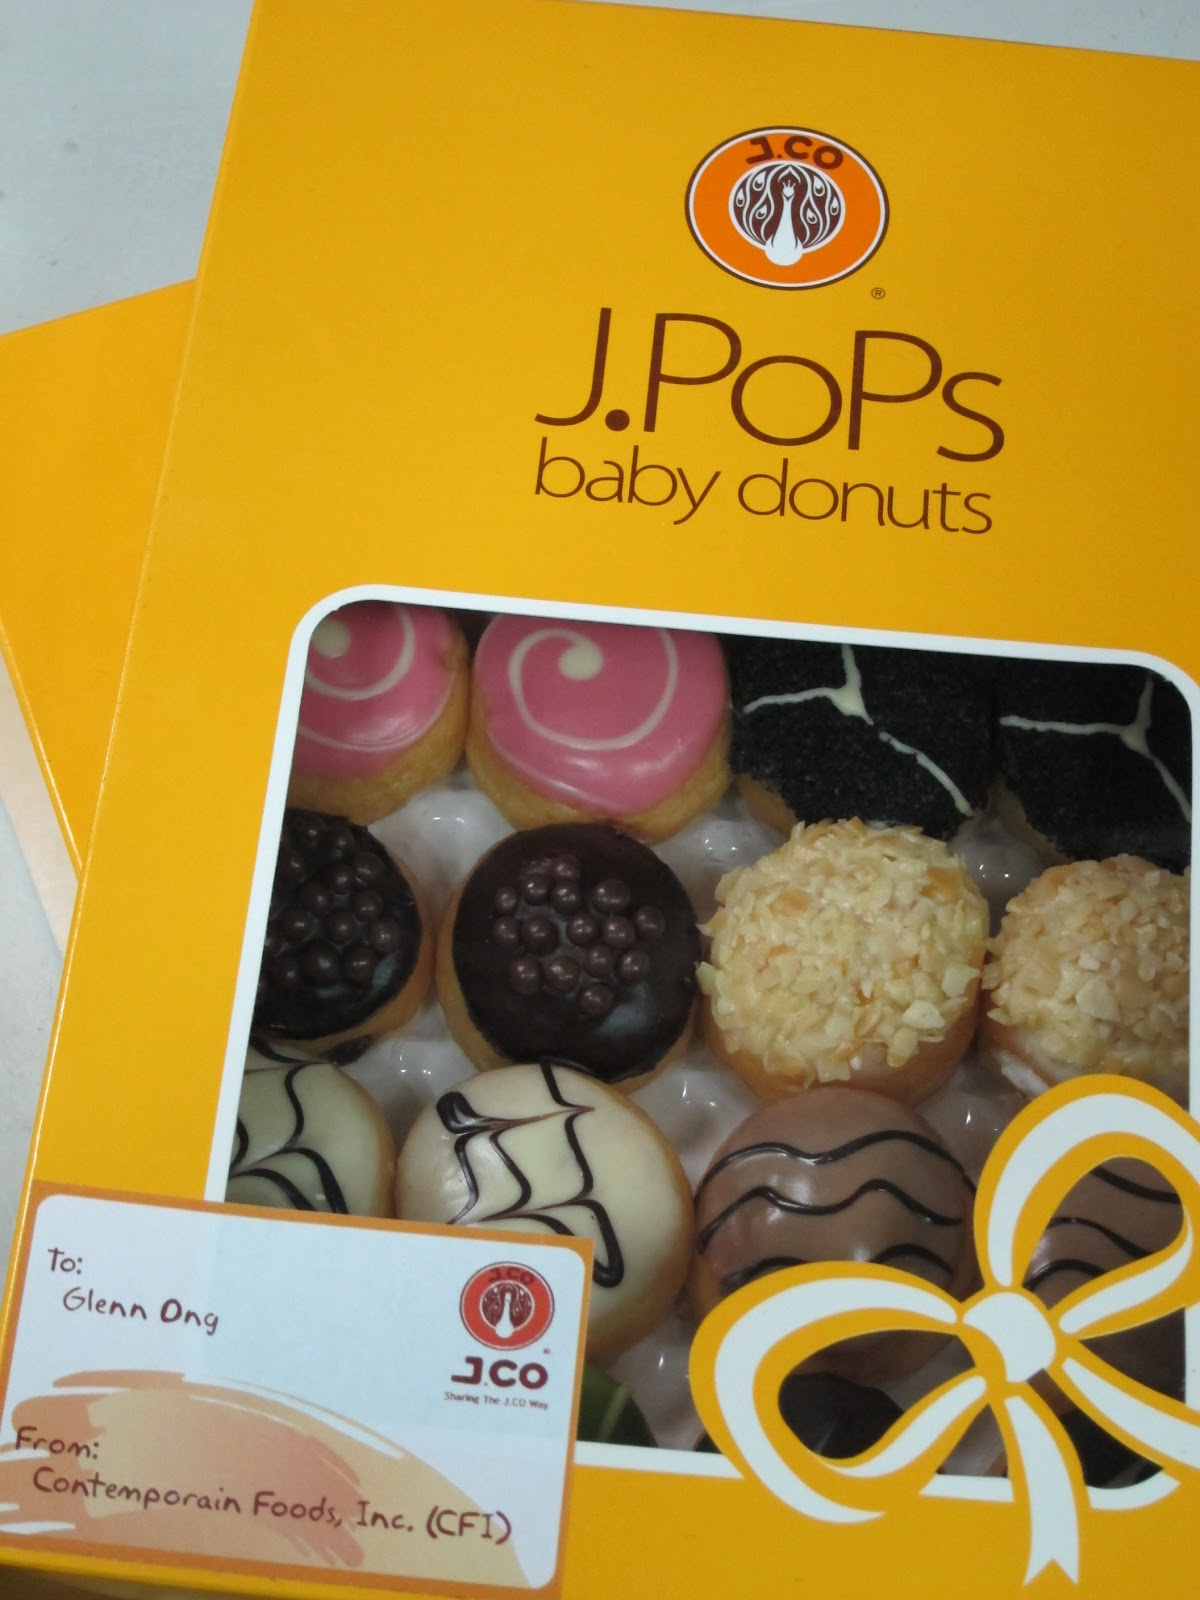 J.POPS Baby Donuts from J.CO Donuts and Coffee... Soon!   Glich's Life